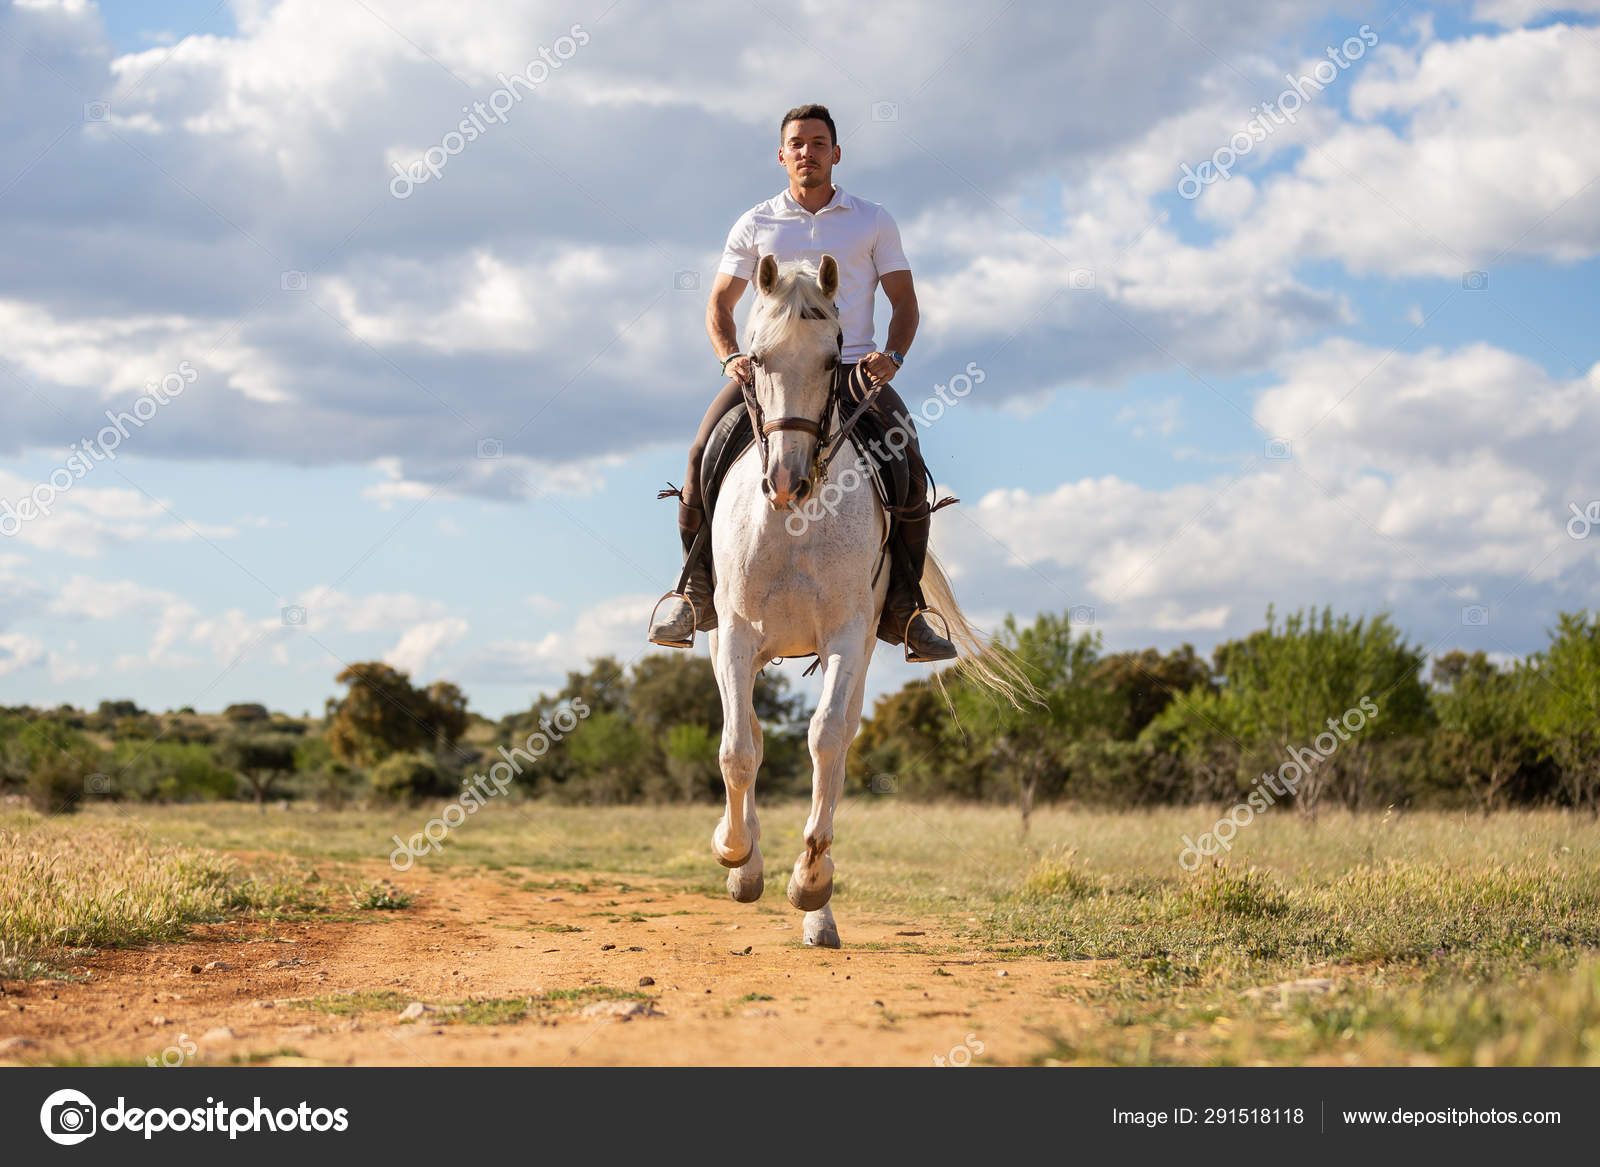 Young Guy Casual Outfit Riding White Horse Sandy Road Stock Photo C Pablobenii 291518118